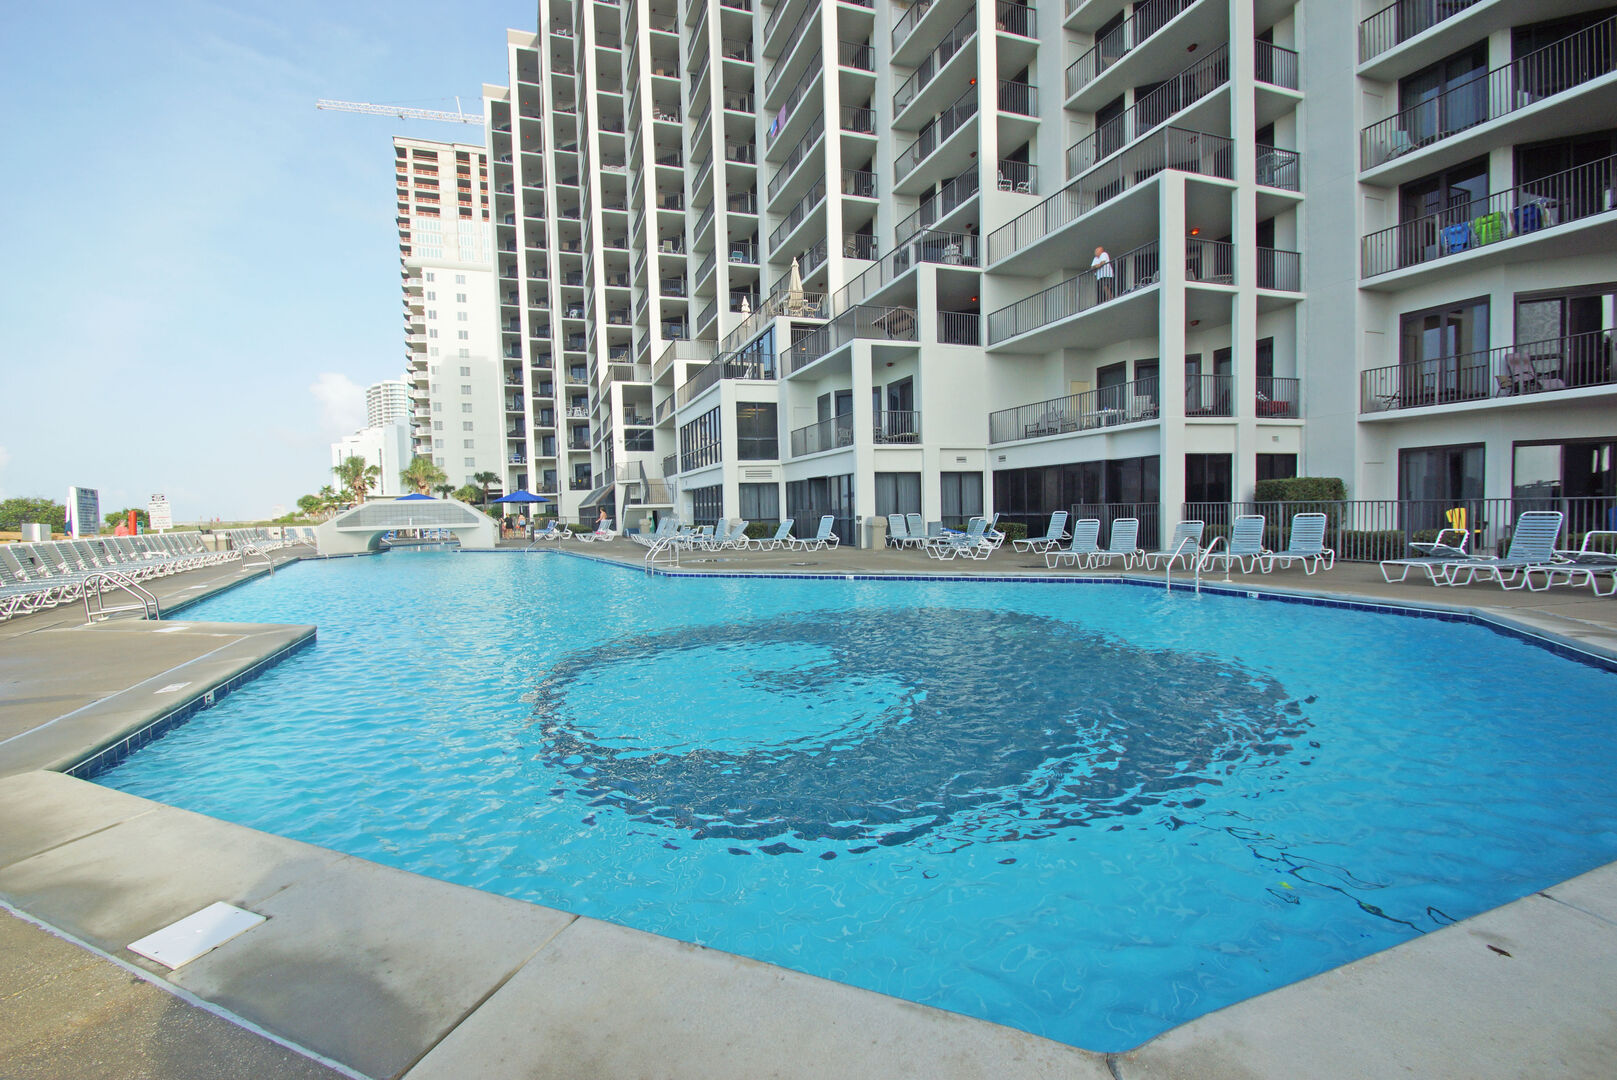 Picture of the Community Pool Surrounded by Lounge Chairs.